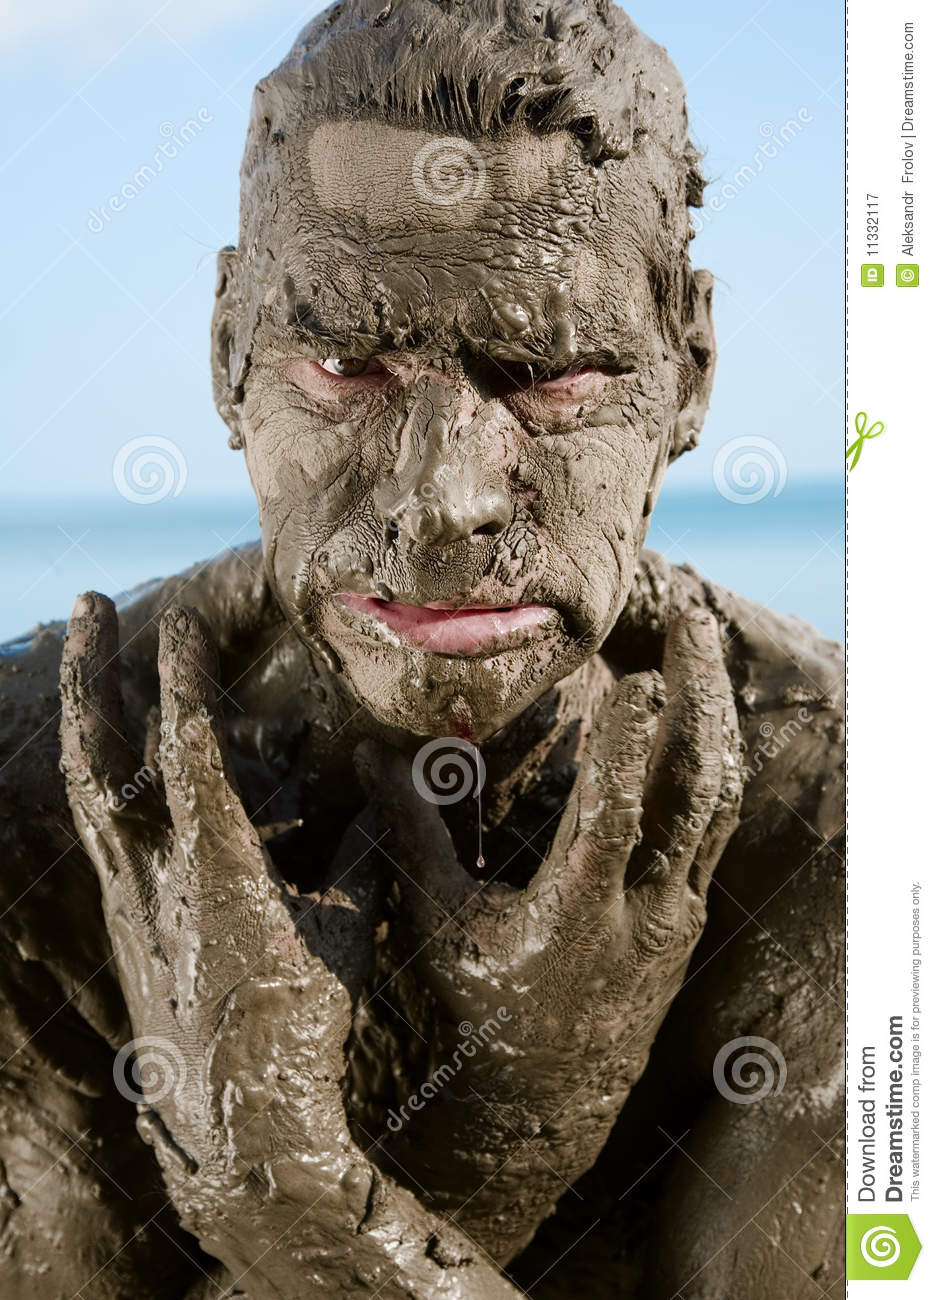 Dirty man royalty free stock photography image 11332117